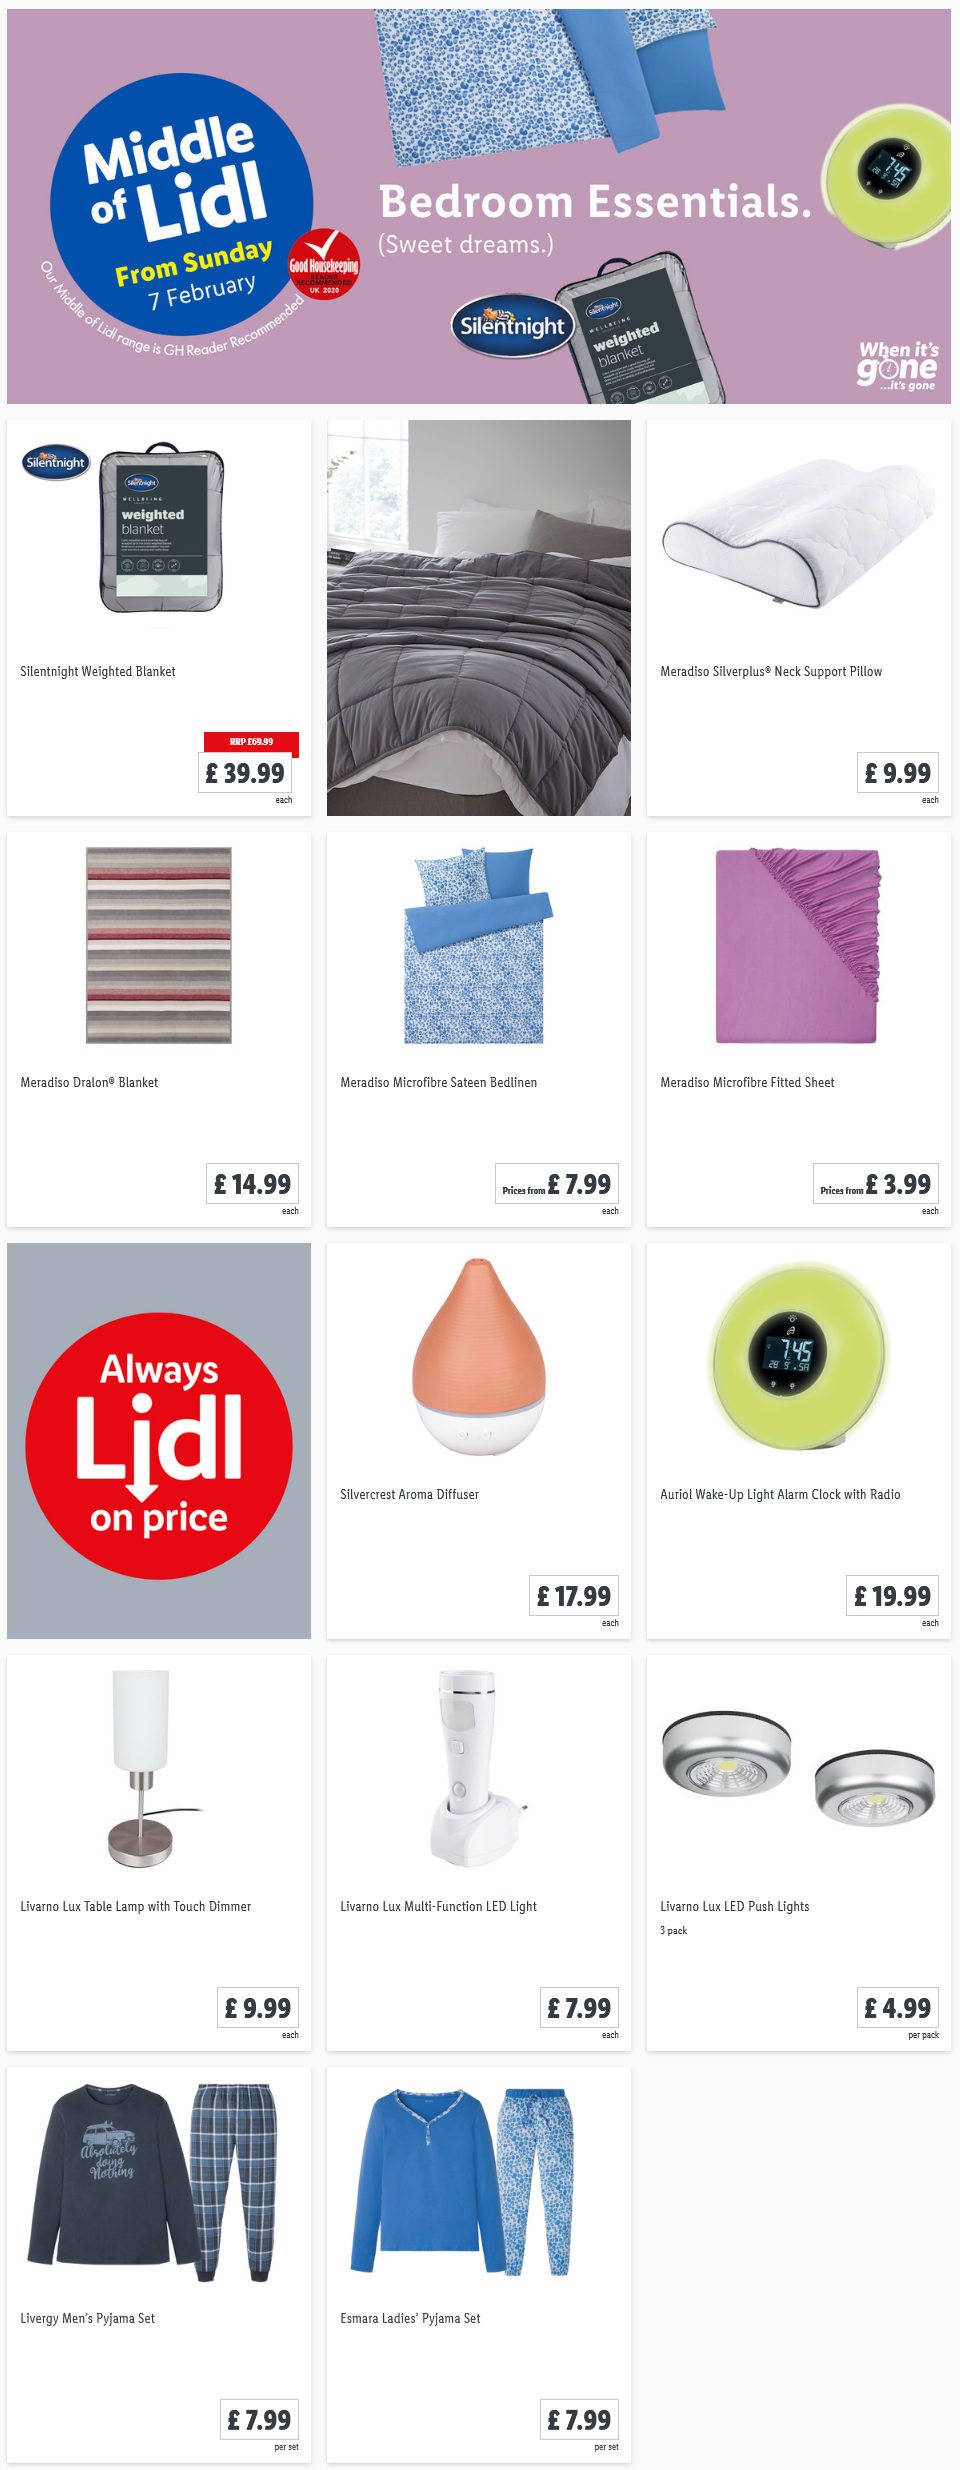 Shop Bedroom Essentials Offers at Lidl From Sunday, 7th February 2021